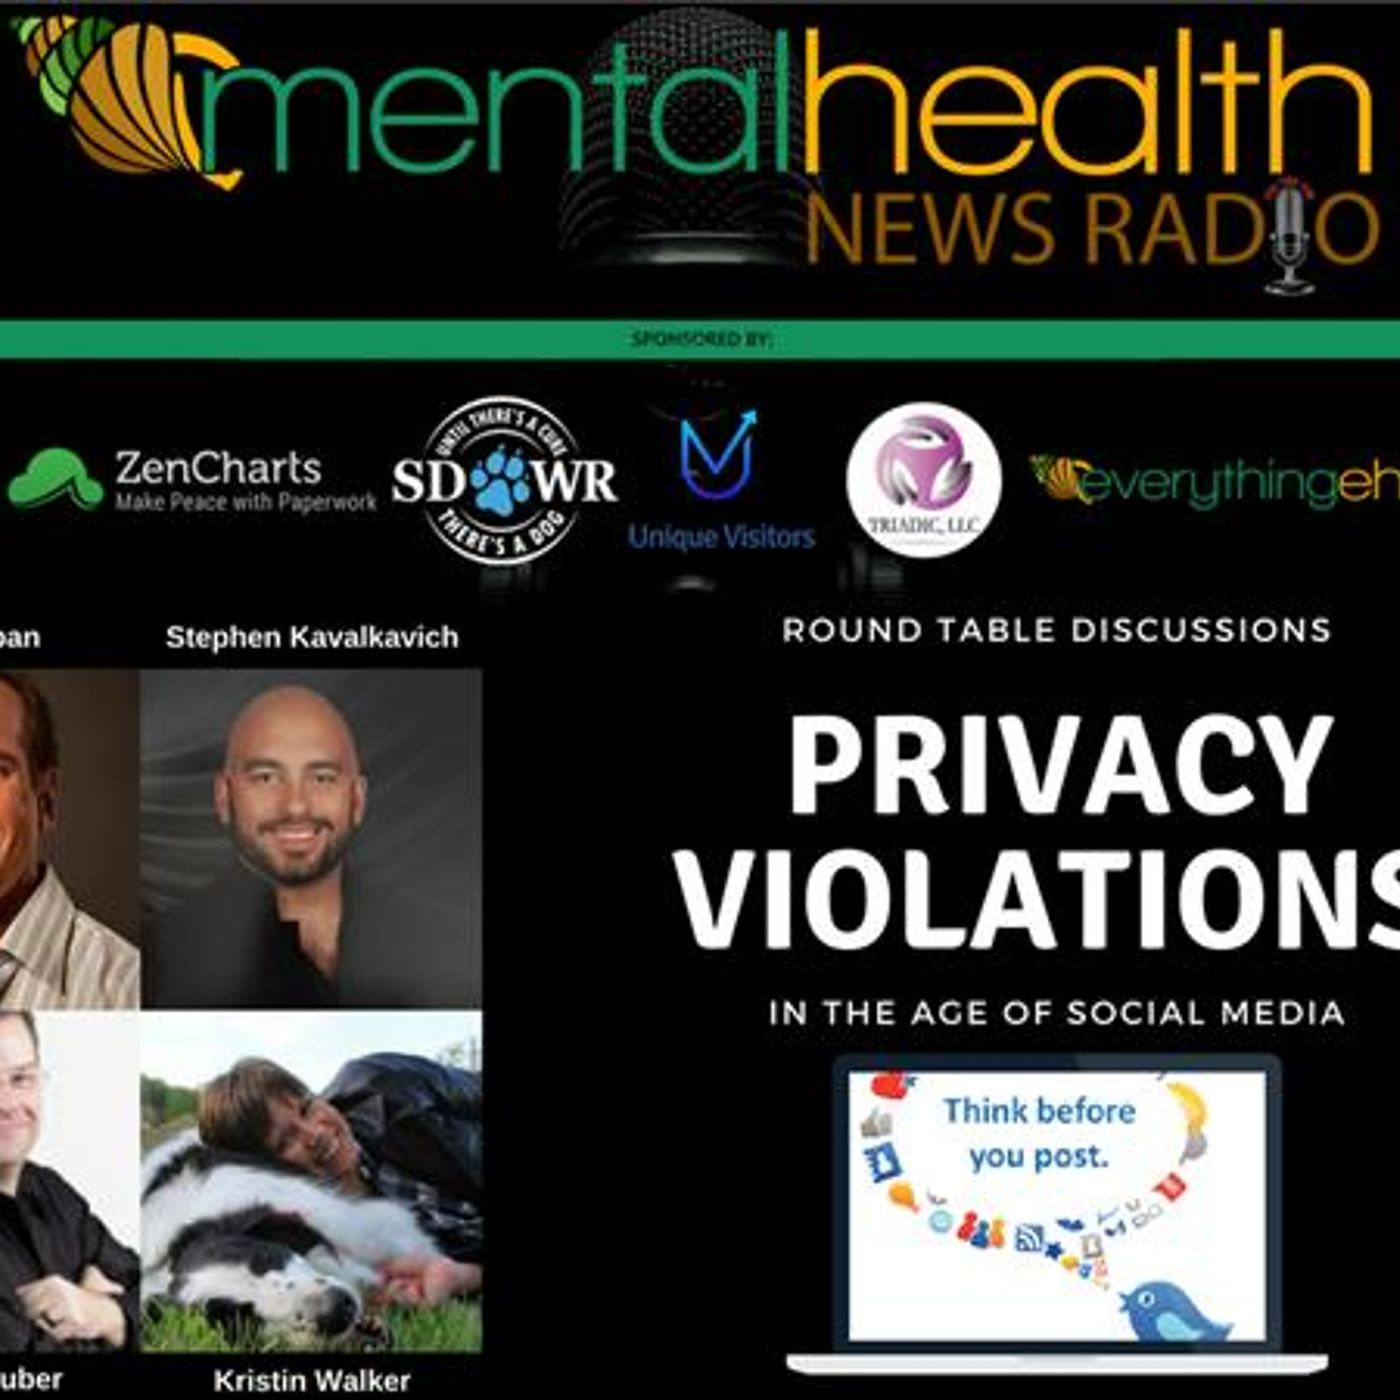 Mental Health News Radio - Round Table Discussions: Privacy Violations in the Age of Social Media